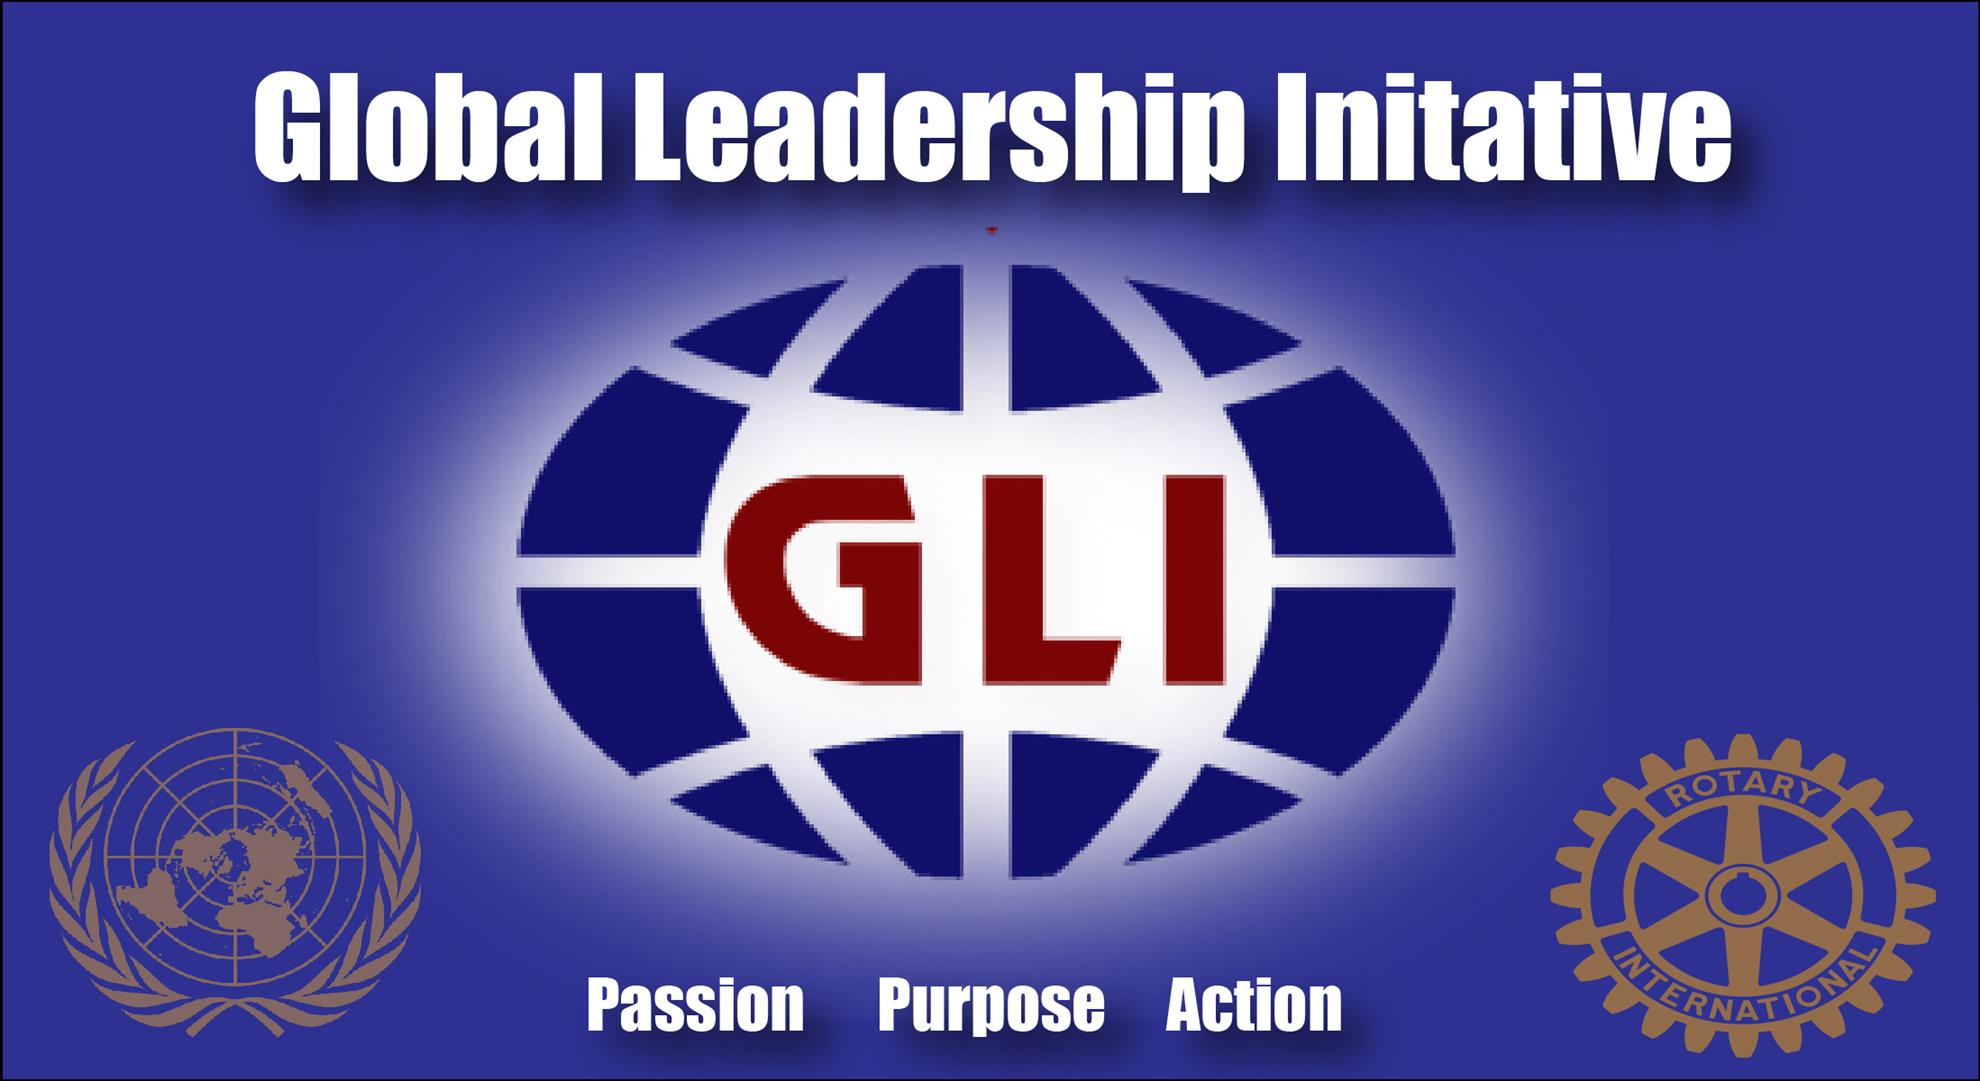 Global Leadership Initiative